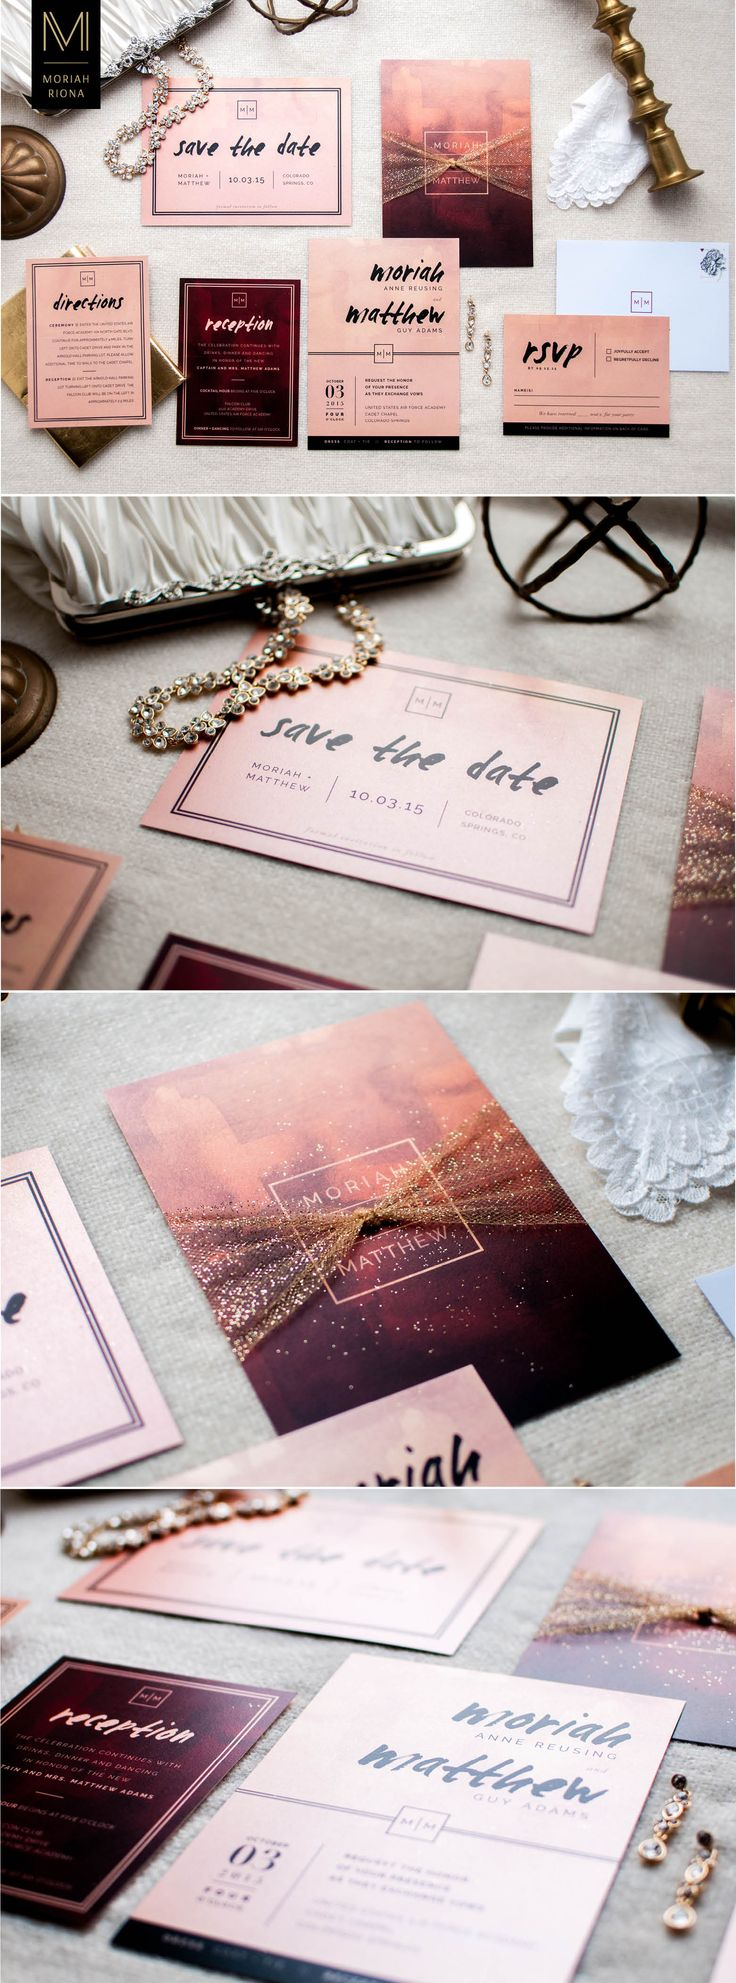 1215 Best Wedding Invitation Images On Pinterest Weddings Wedding